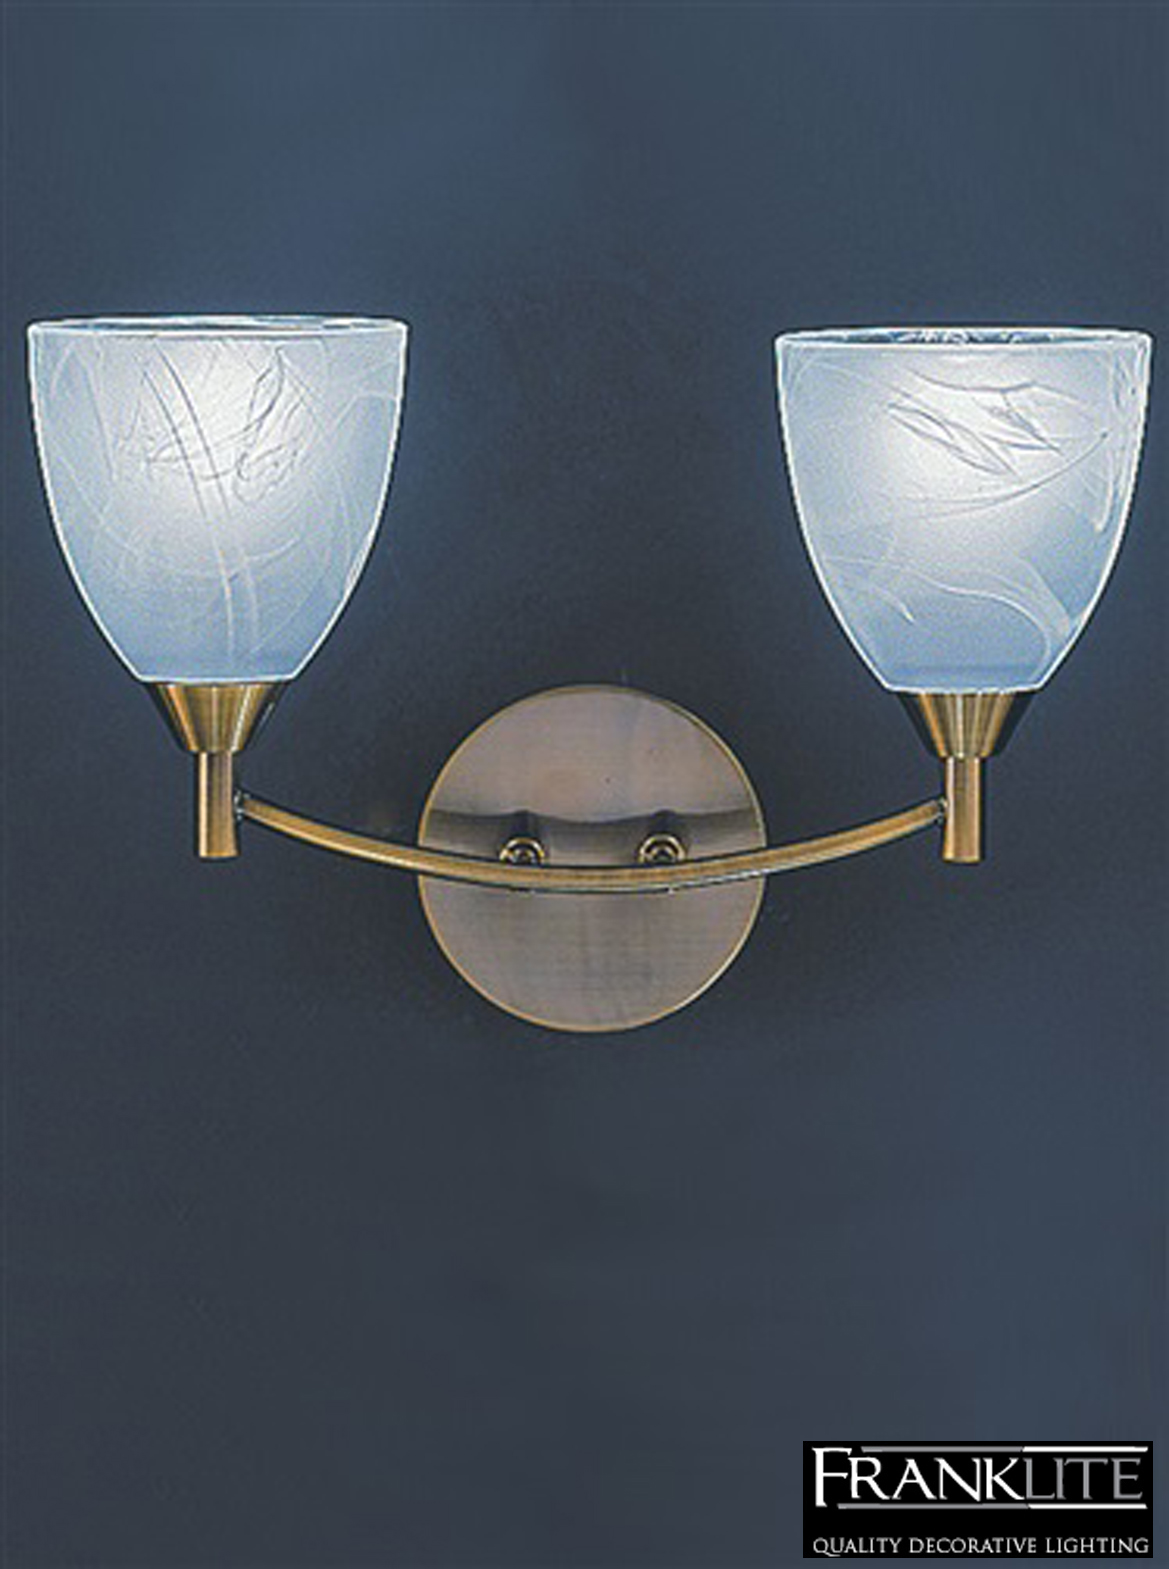 Wall Lights Glass Shades : FRANKLITE EMMY BRONZE FINISH & ALABASTER GLASS SHADES, DOUBLE WALL LIGHT - FL2105/2 from Easy ...